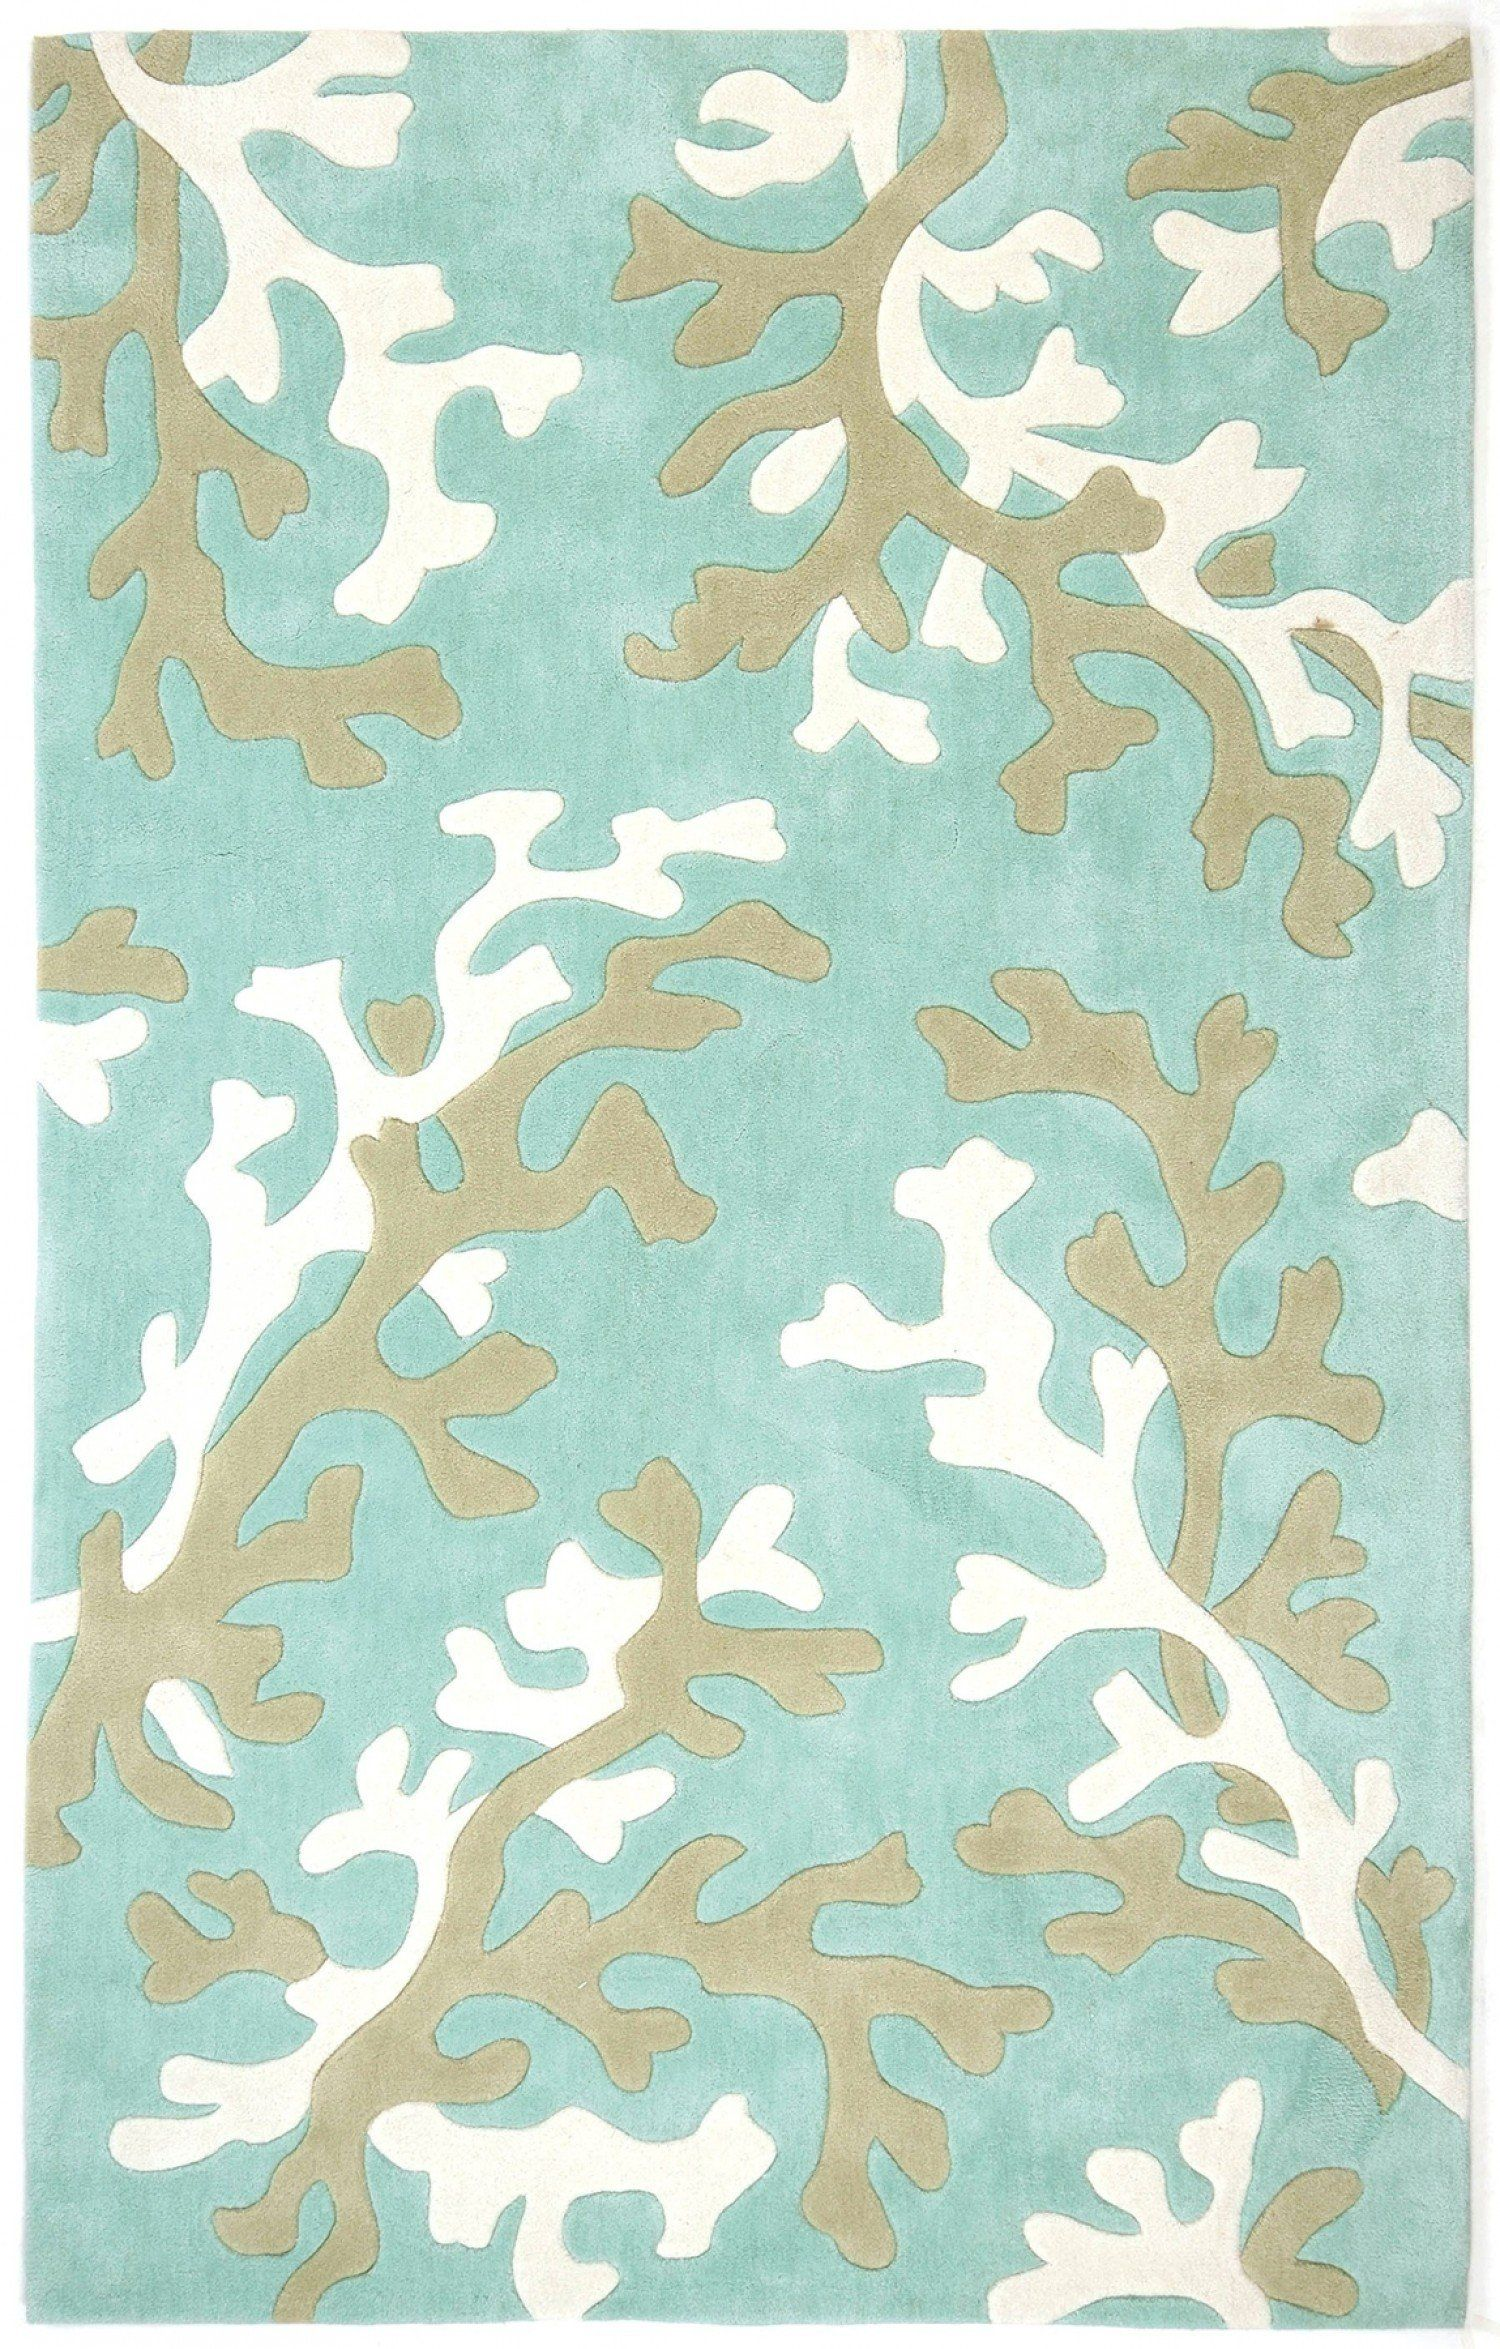 Jaipur Fusion Coral Fixation Fn06 Turquoise Blue White Rug